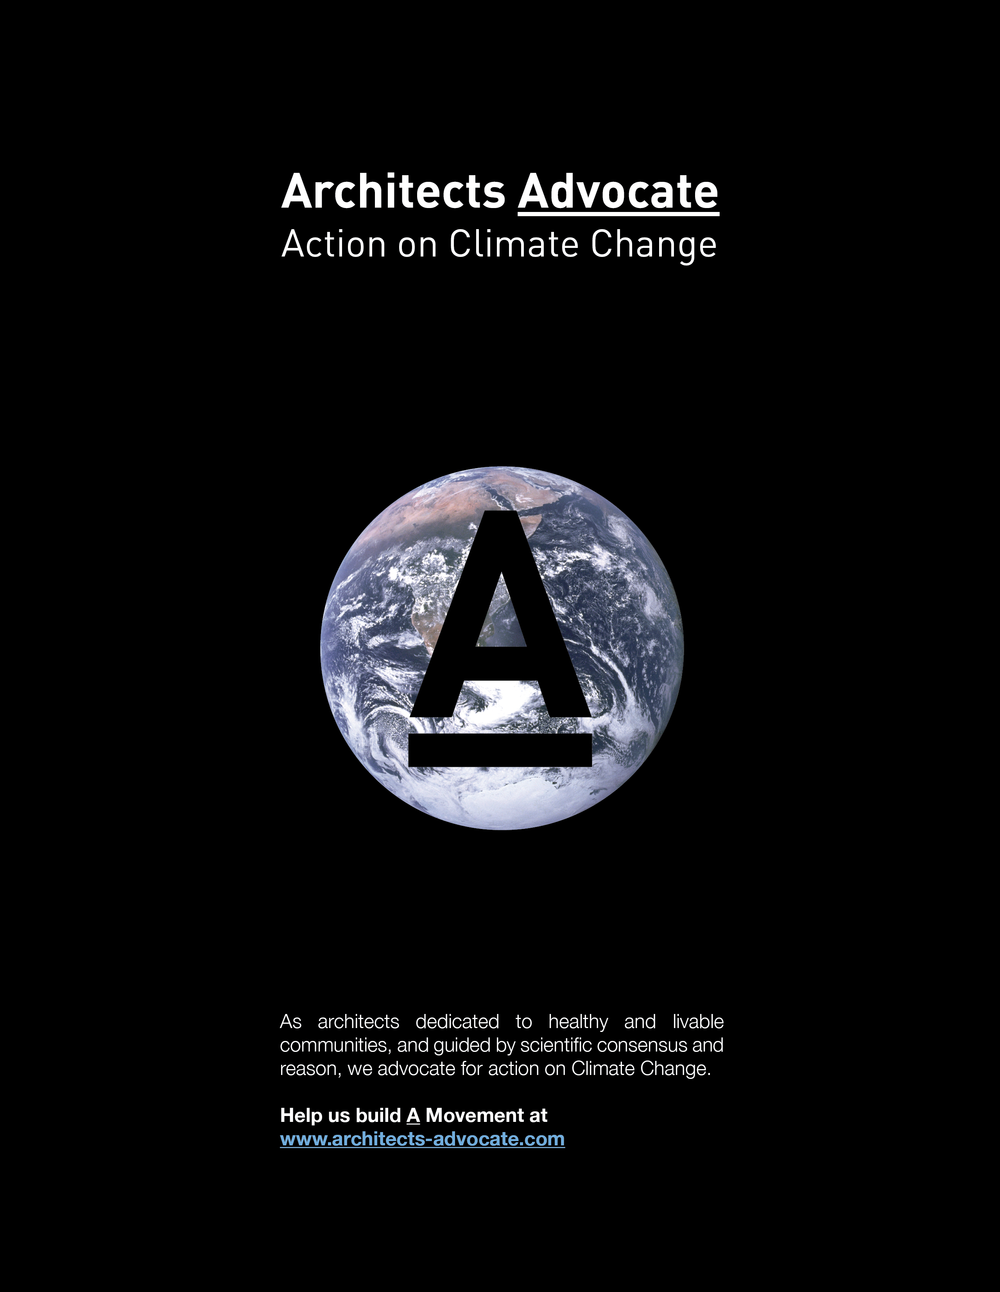 Architects Advocate for Action on Climate Change